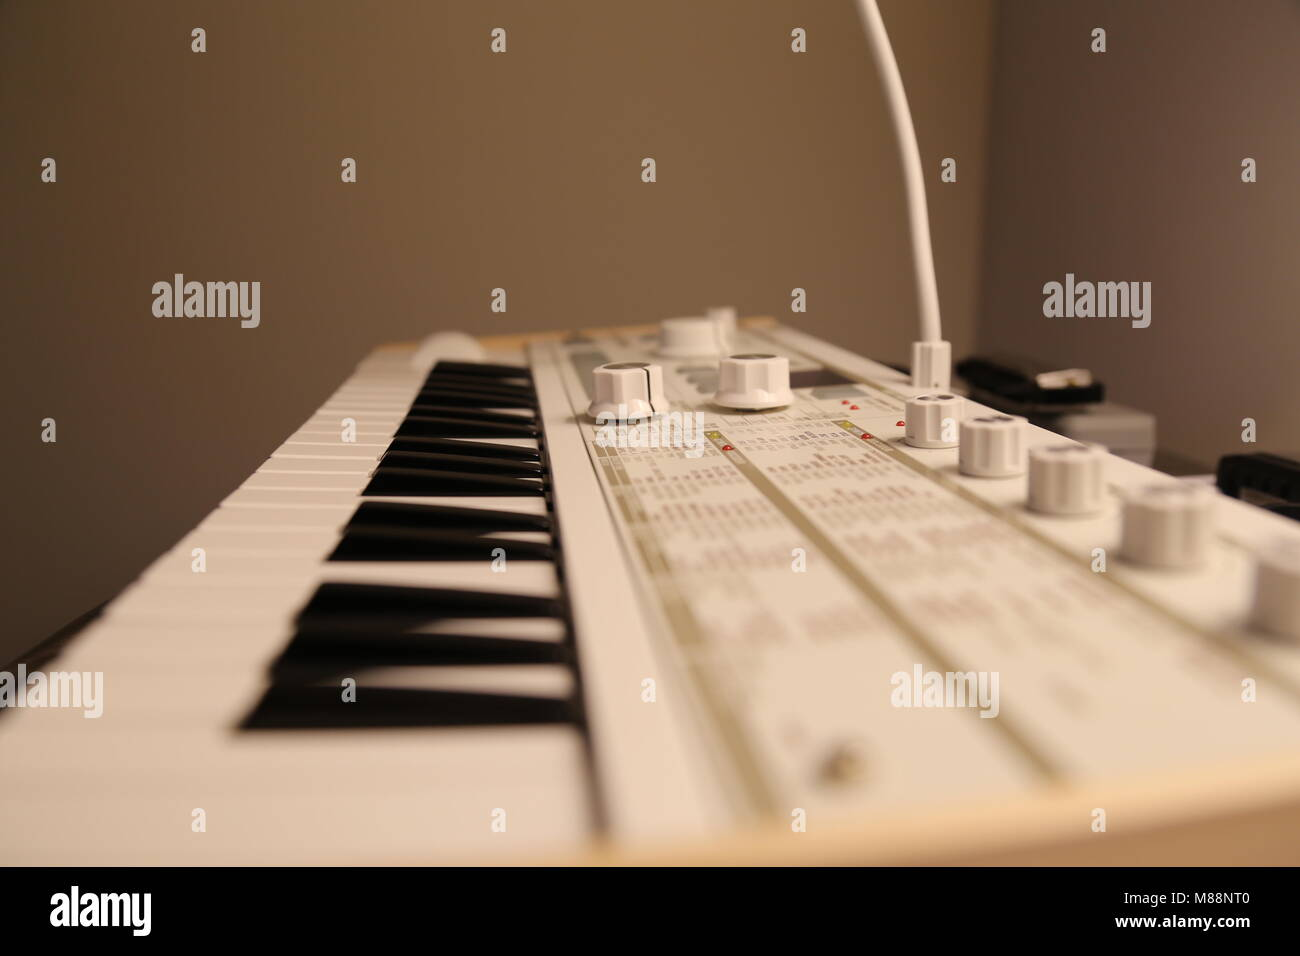 Synthesizer Stock Photos & Synthesizer Stock Images - Alamy